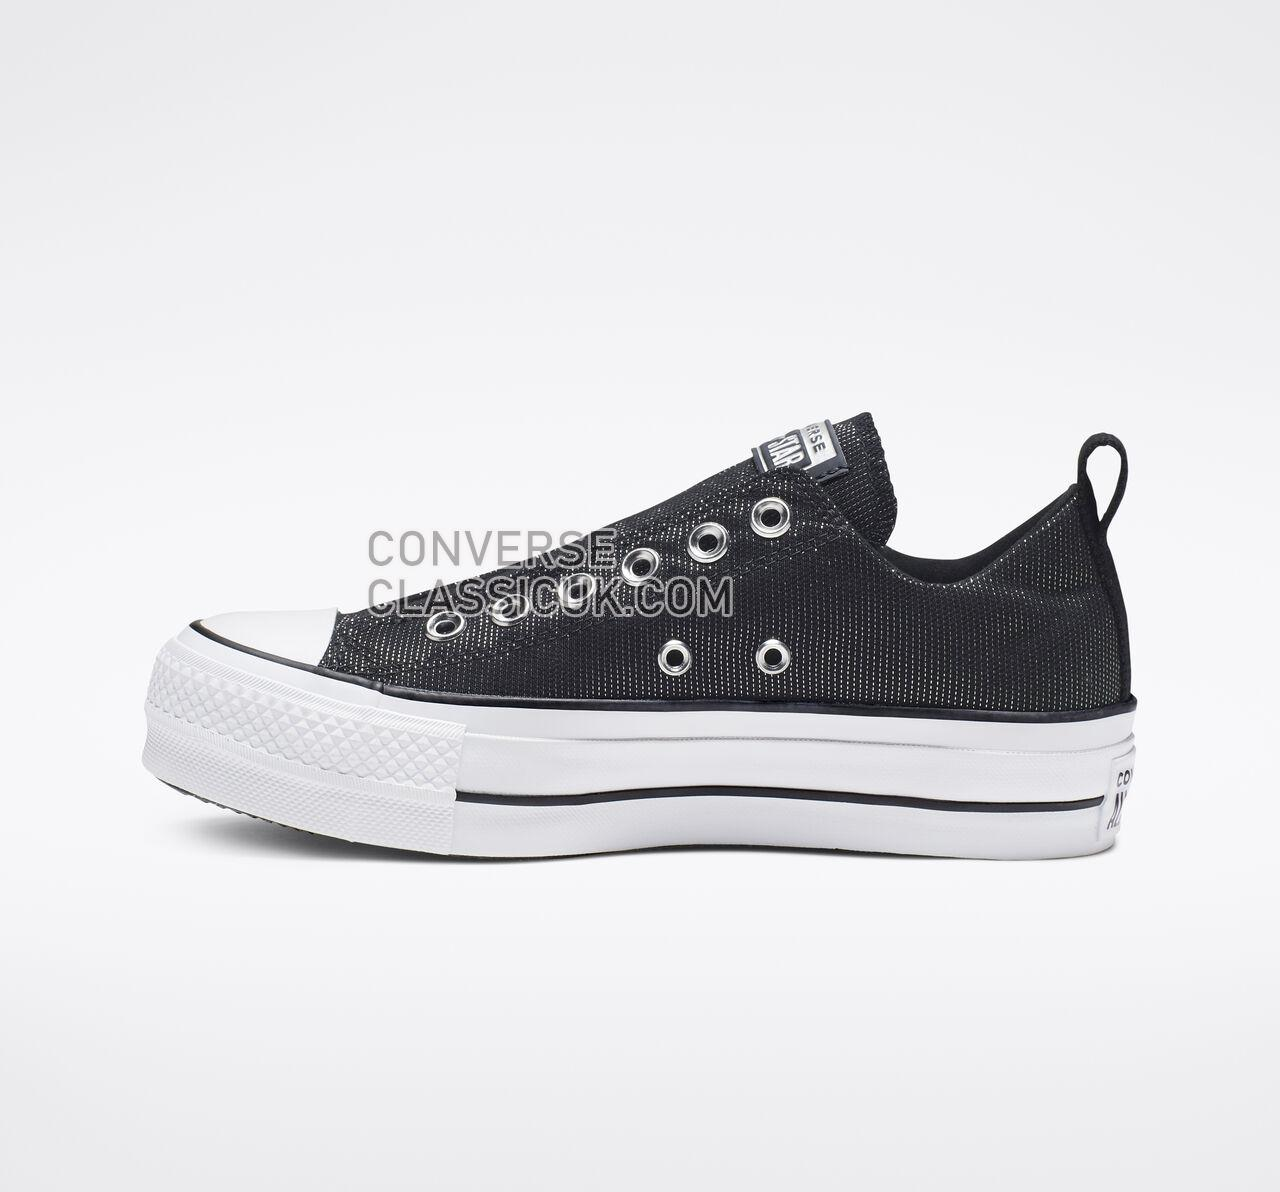 Converse Chuck Taylor All Star Final Frontier Platform Slip Womens 565240C Black/White/Black Shoes